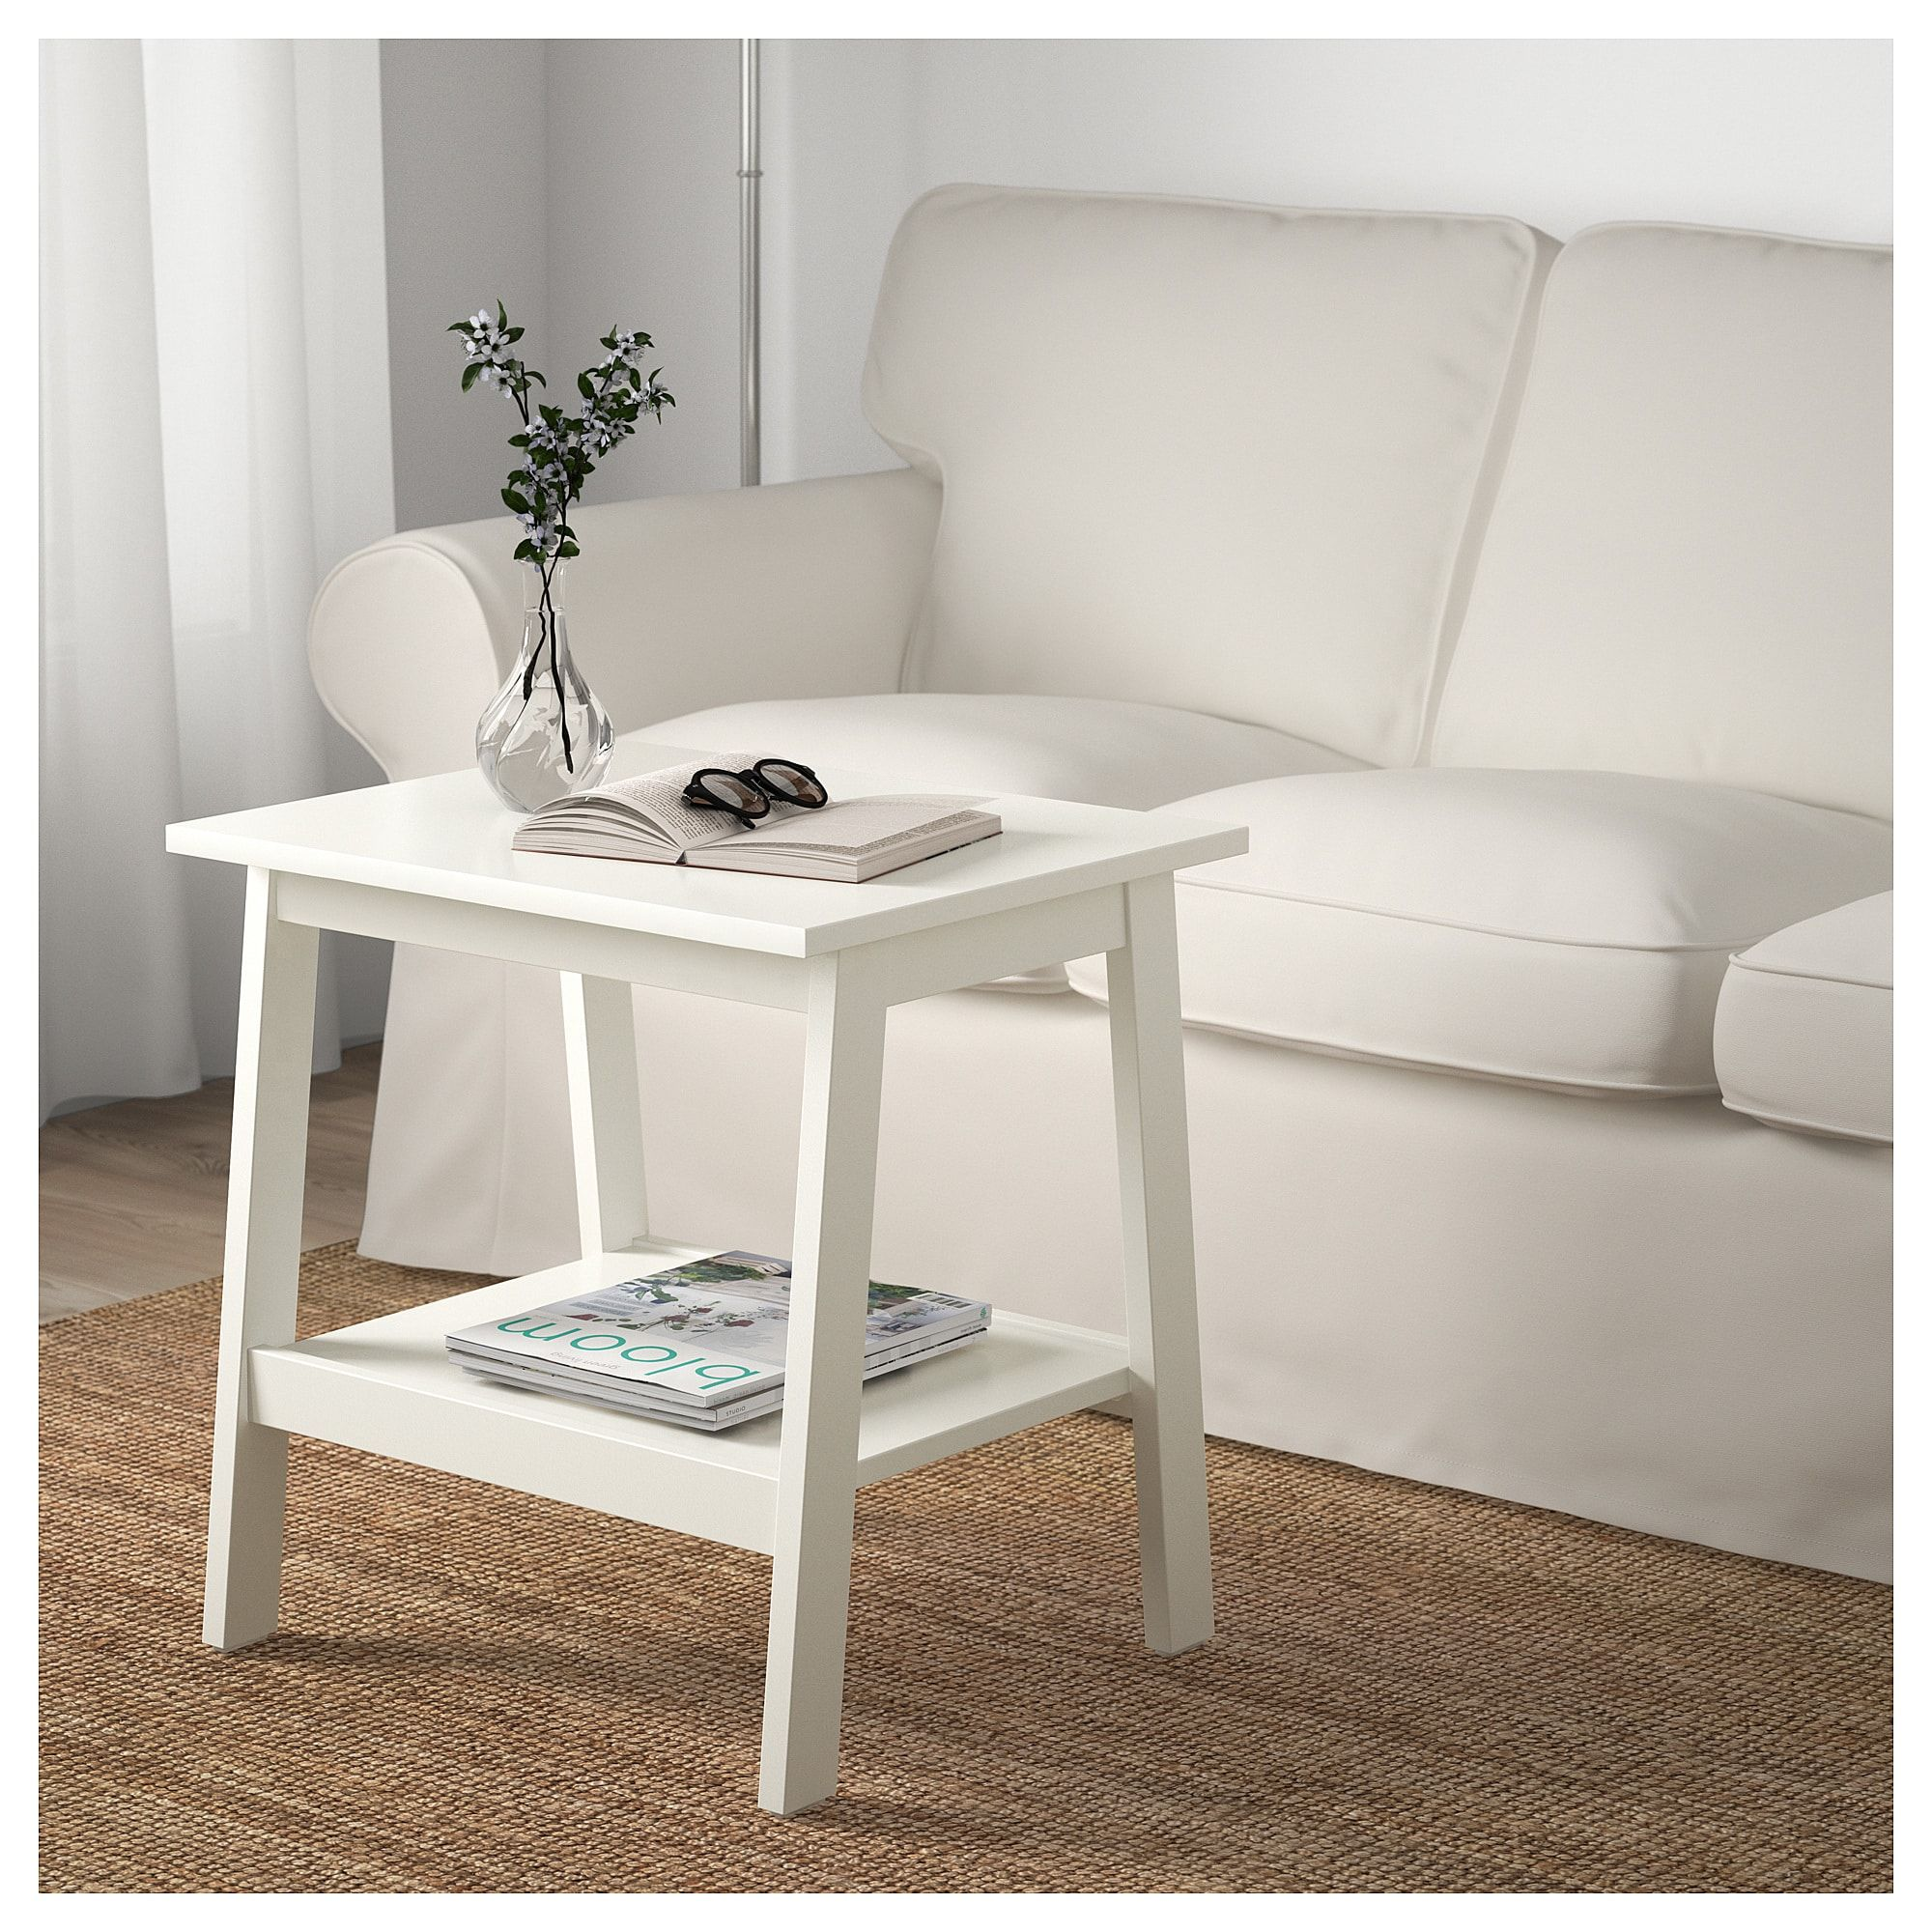 Lunnarp Beistelltisch Weiss Ikea Deutschland White Side Tables Ikea White Side Table Dinning Tables And Chairs